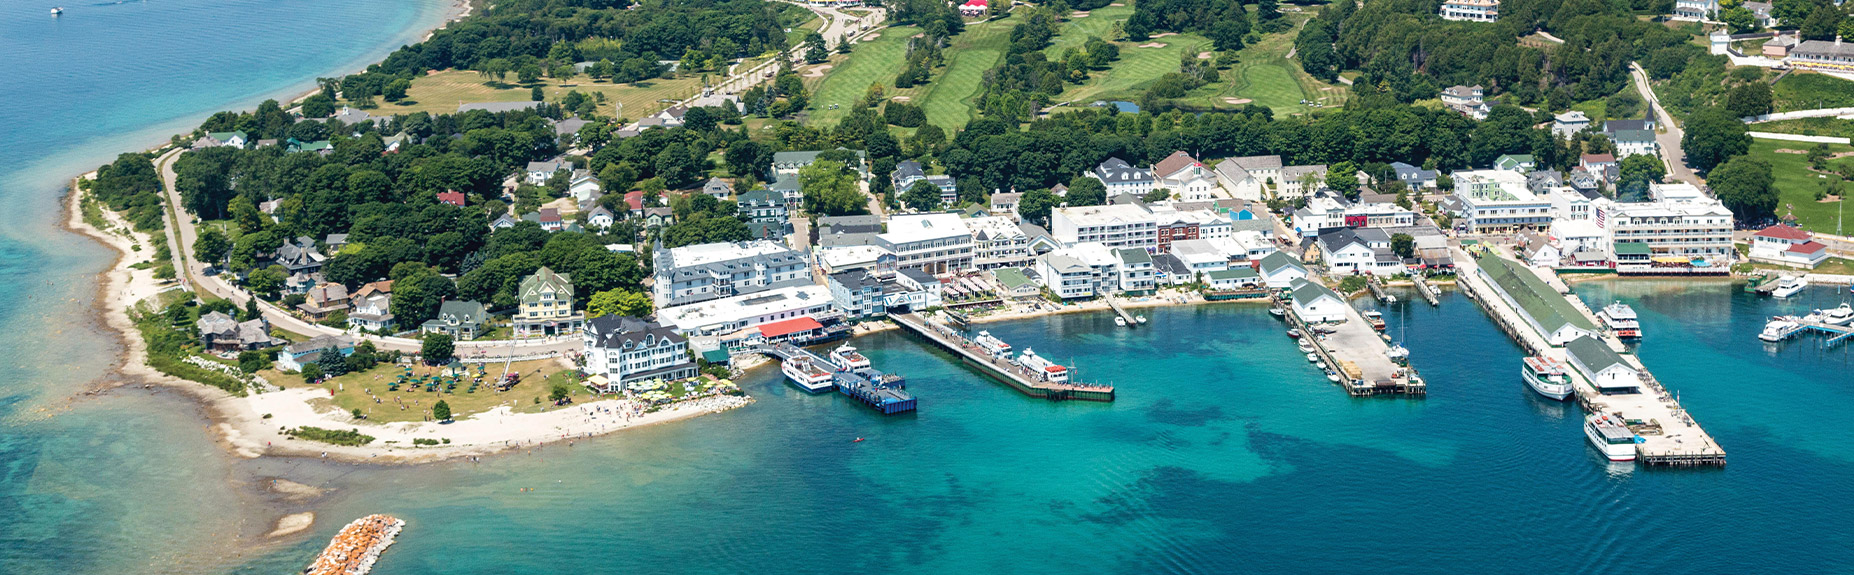 mackinac island cruises